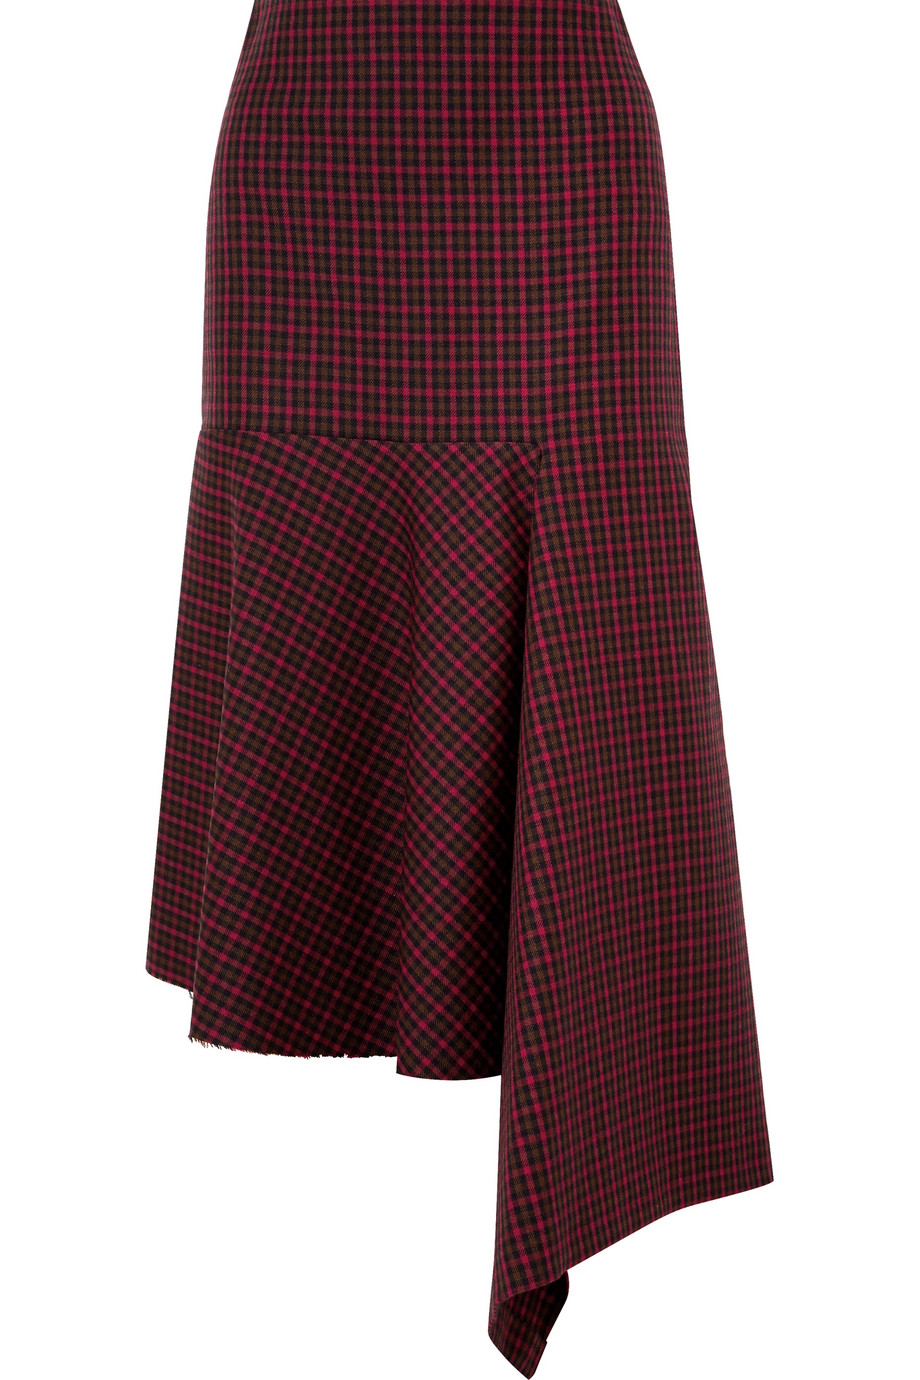 Balenciaga asymmetric check skirt by Demna Gvasalia